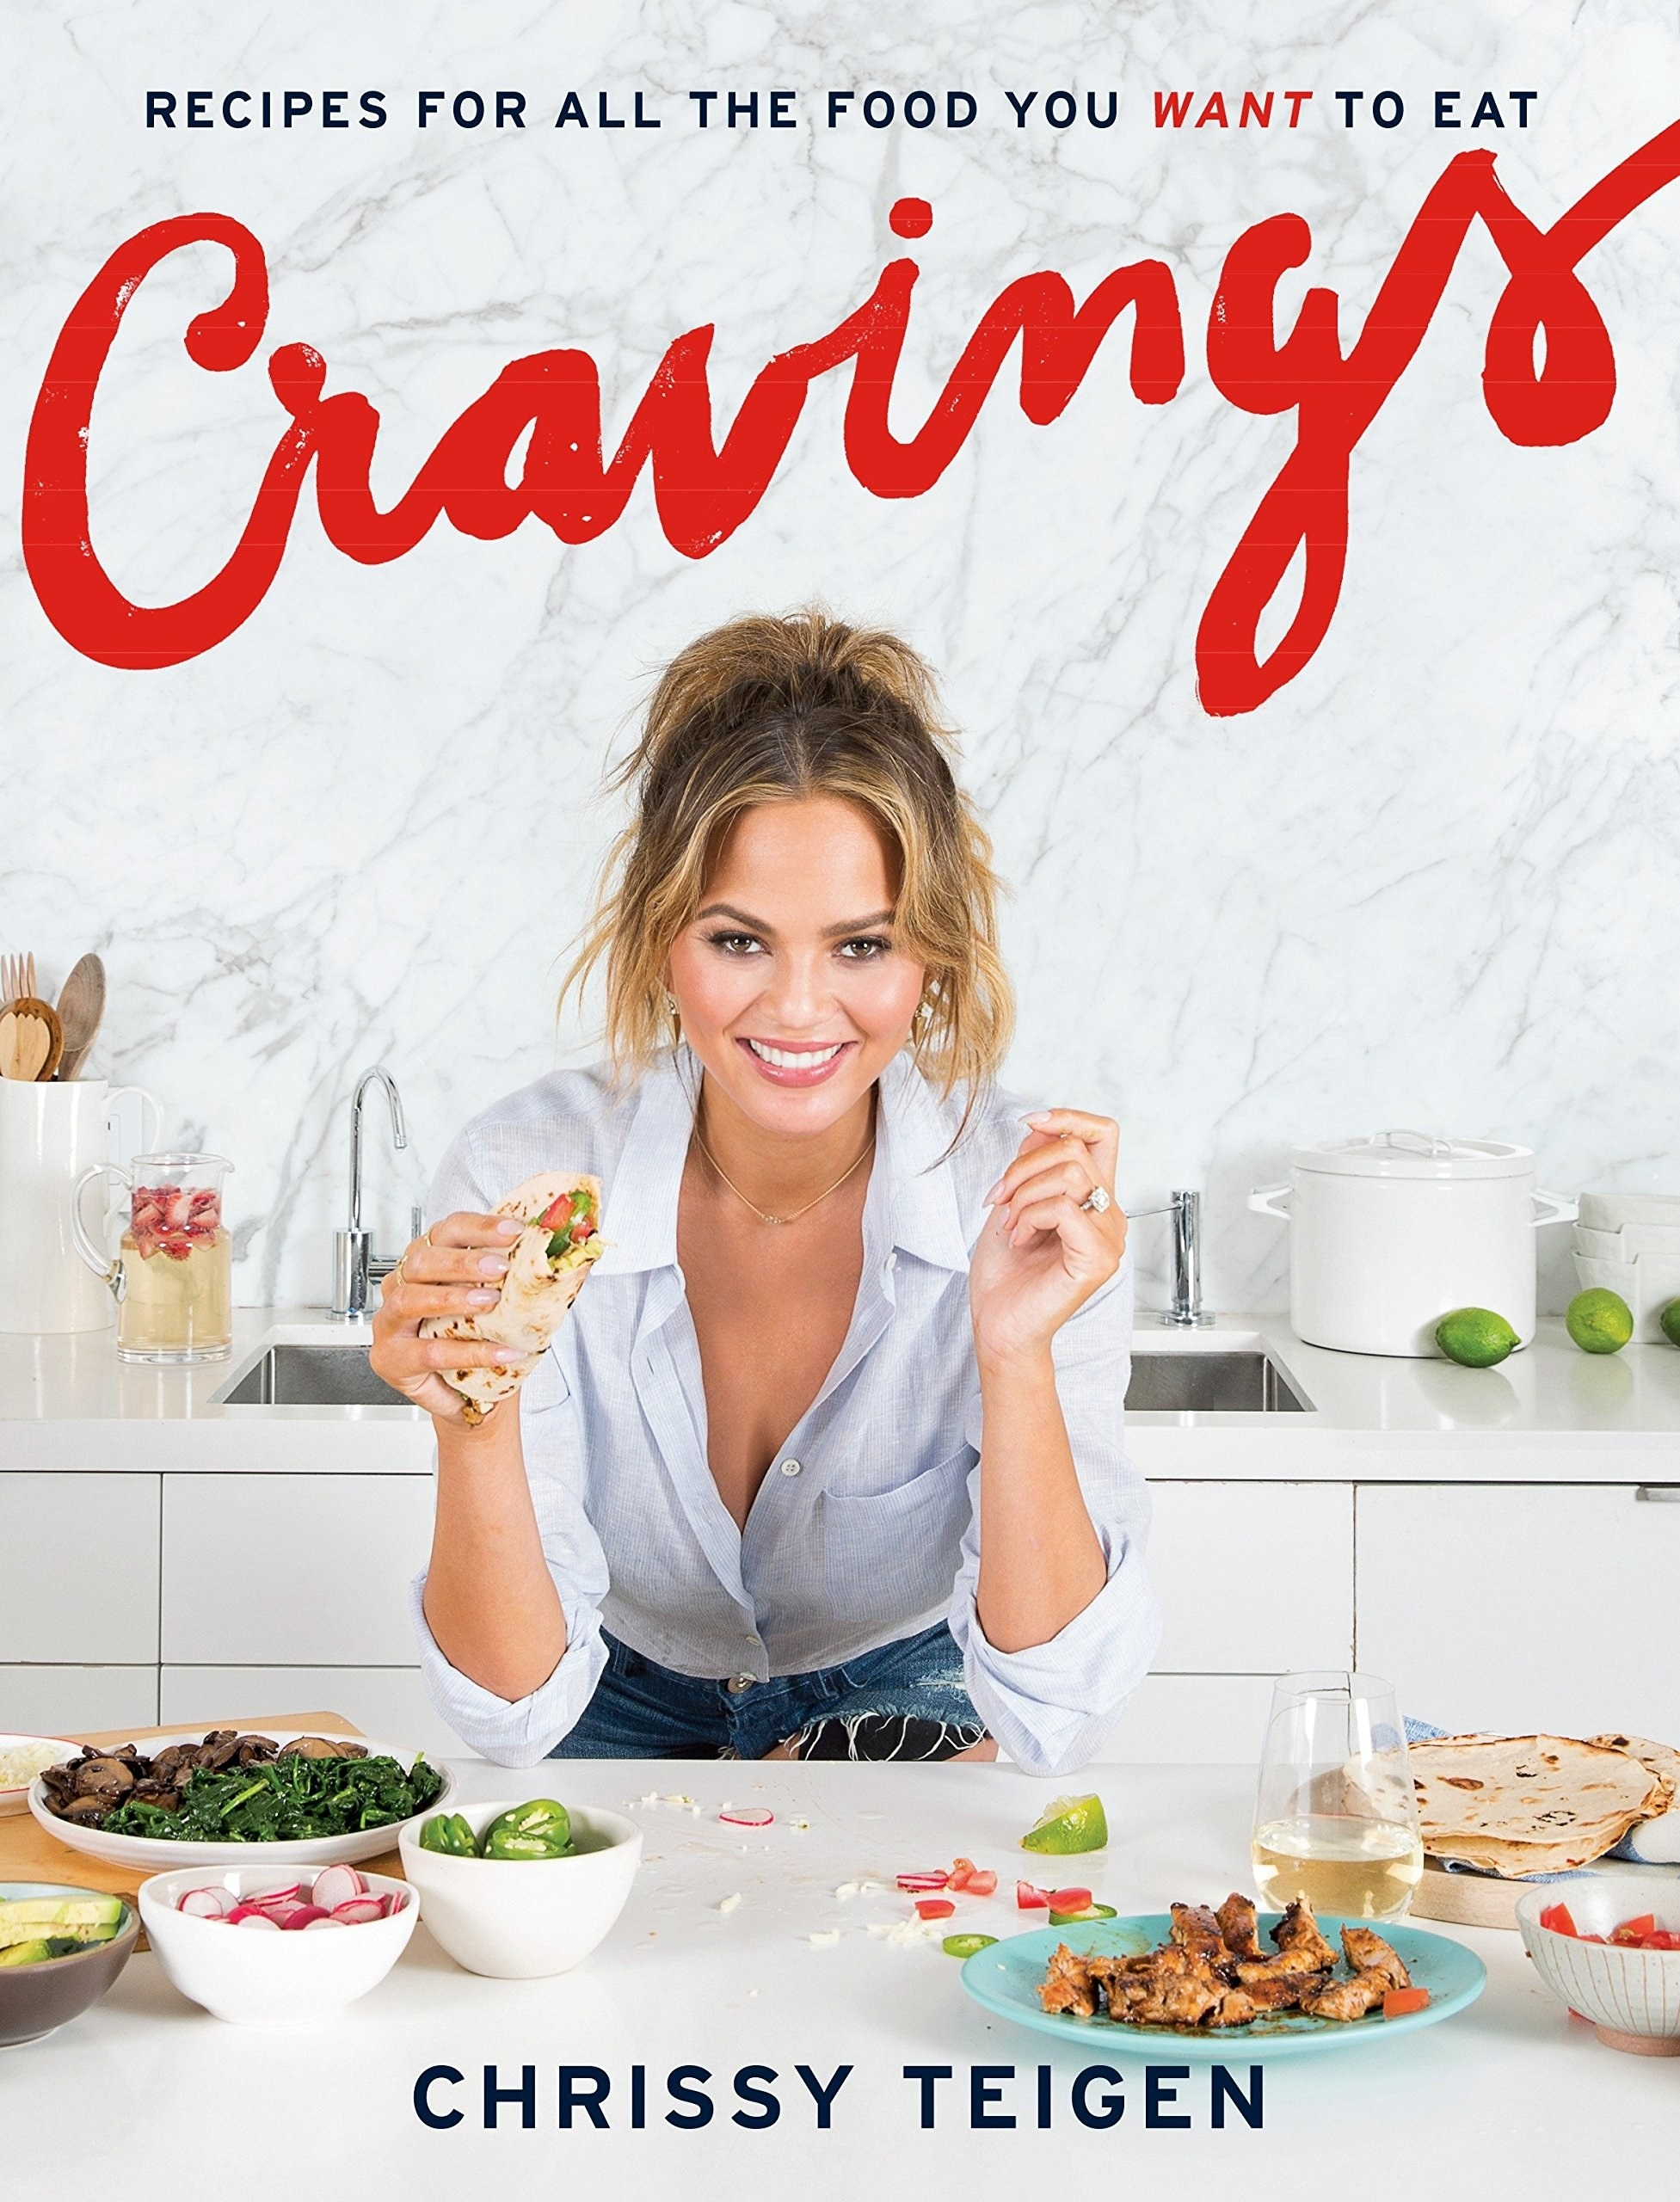 Chrissy Teigen on the cover of her cookbook